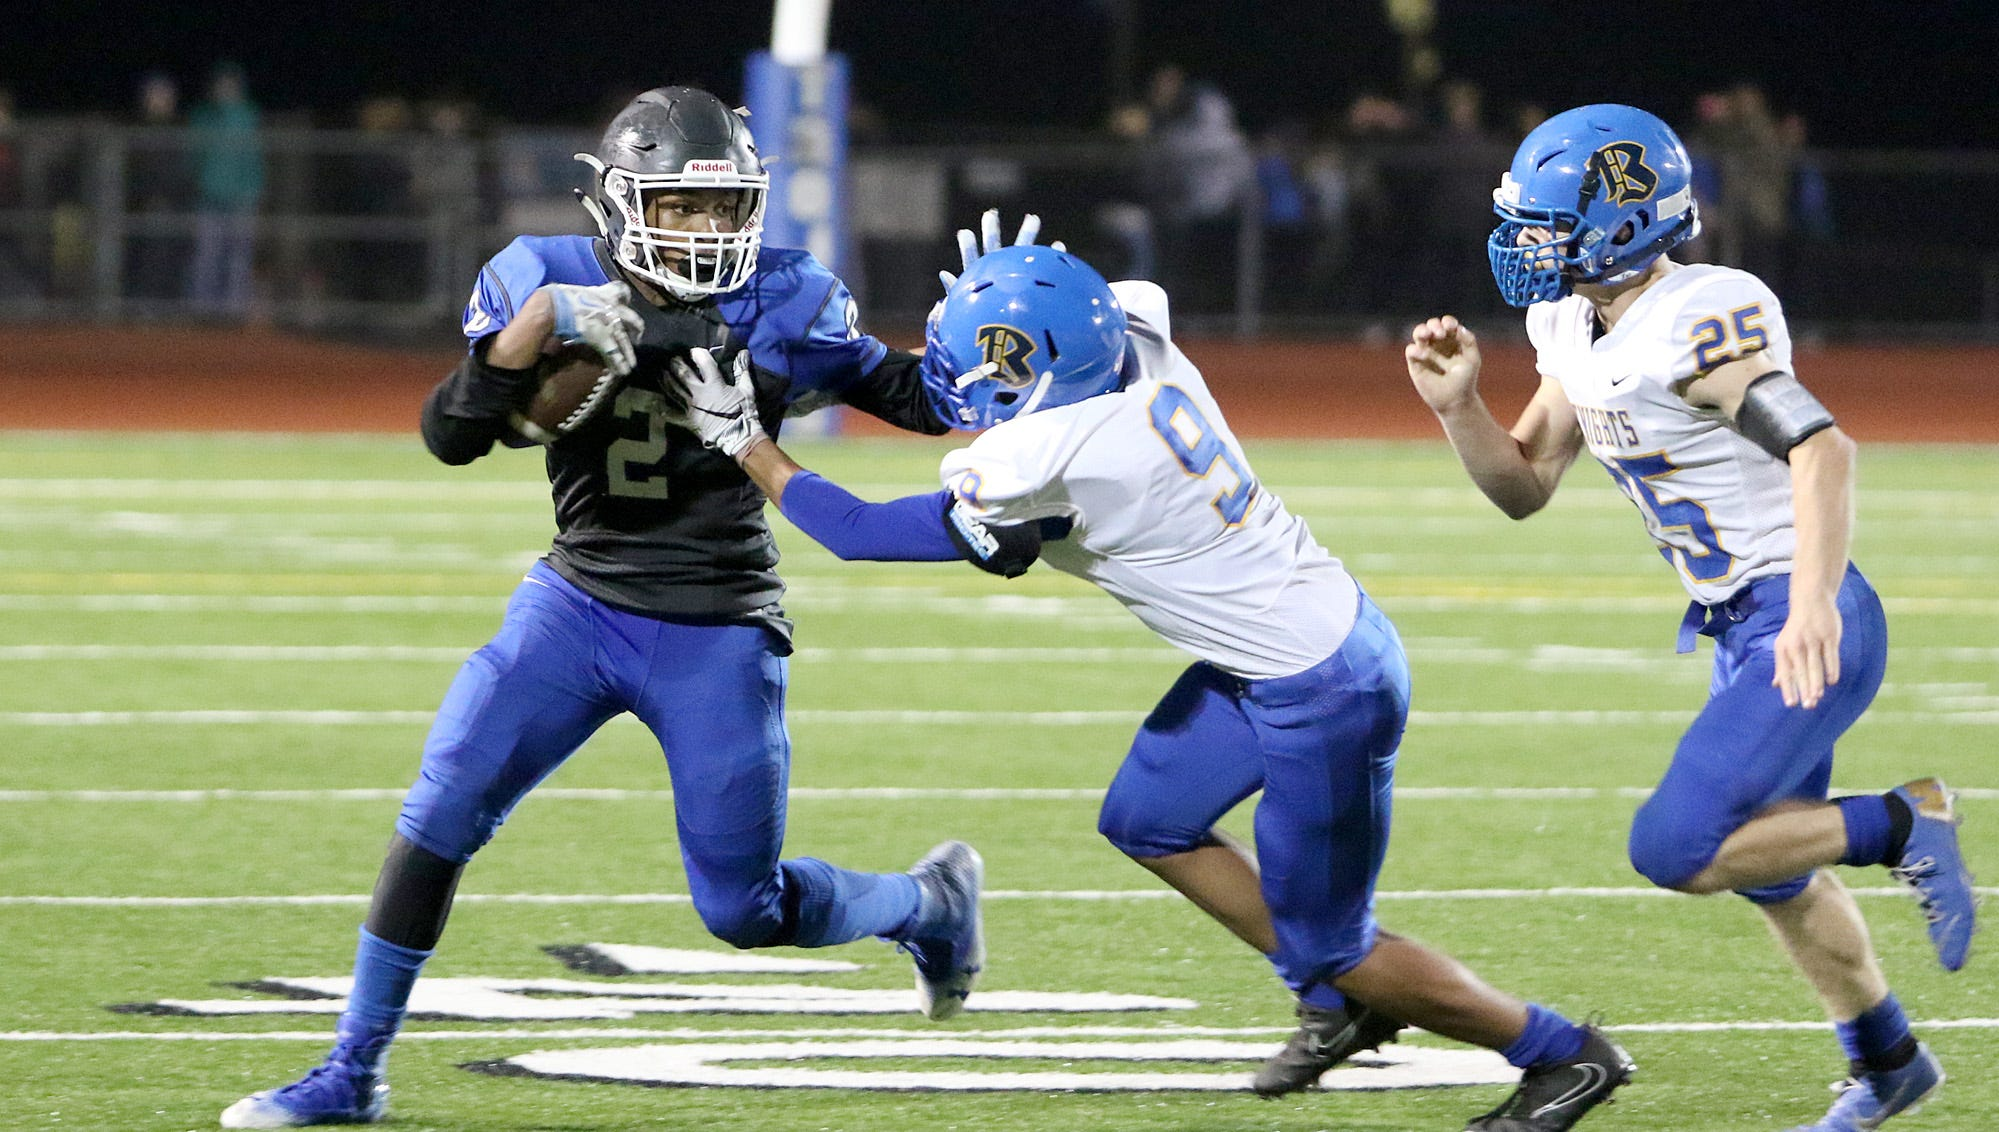 Olymic's Darelle White fights off Bremerton's Hector Infante and Ryan Saylor during the Trojans' 34-27 win Friday night at Silverdale Stadium.